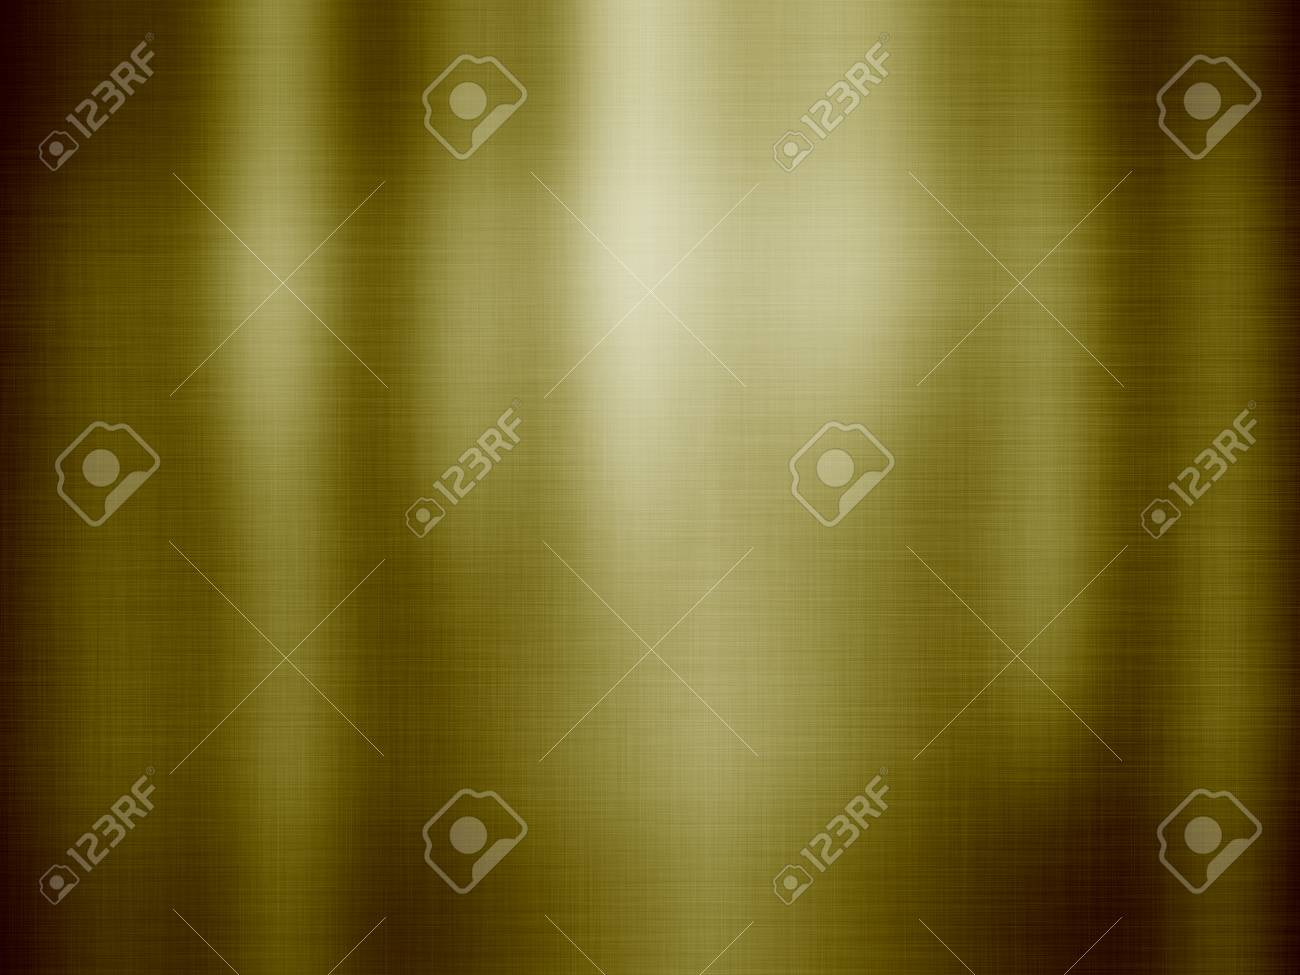 Stainless steel texture or metal texture background Banque d'images - 75076738